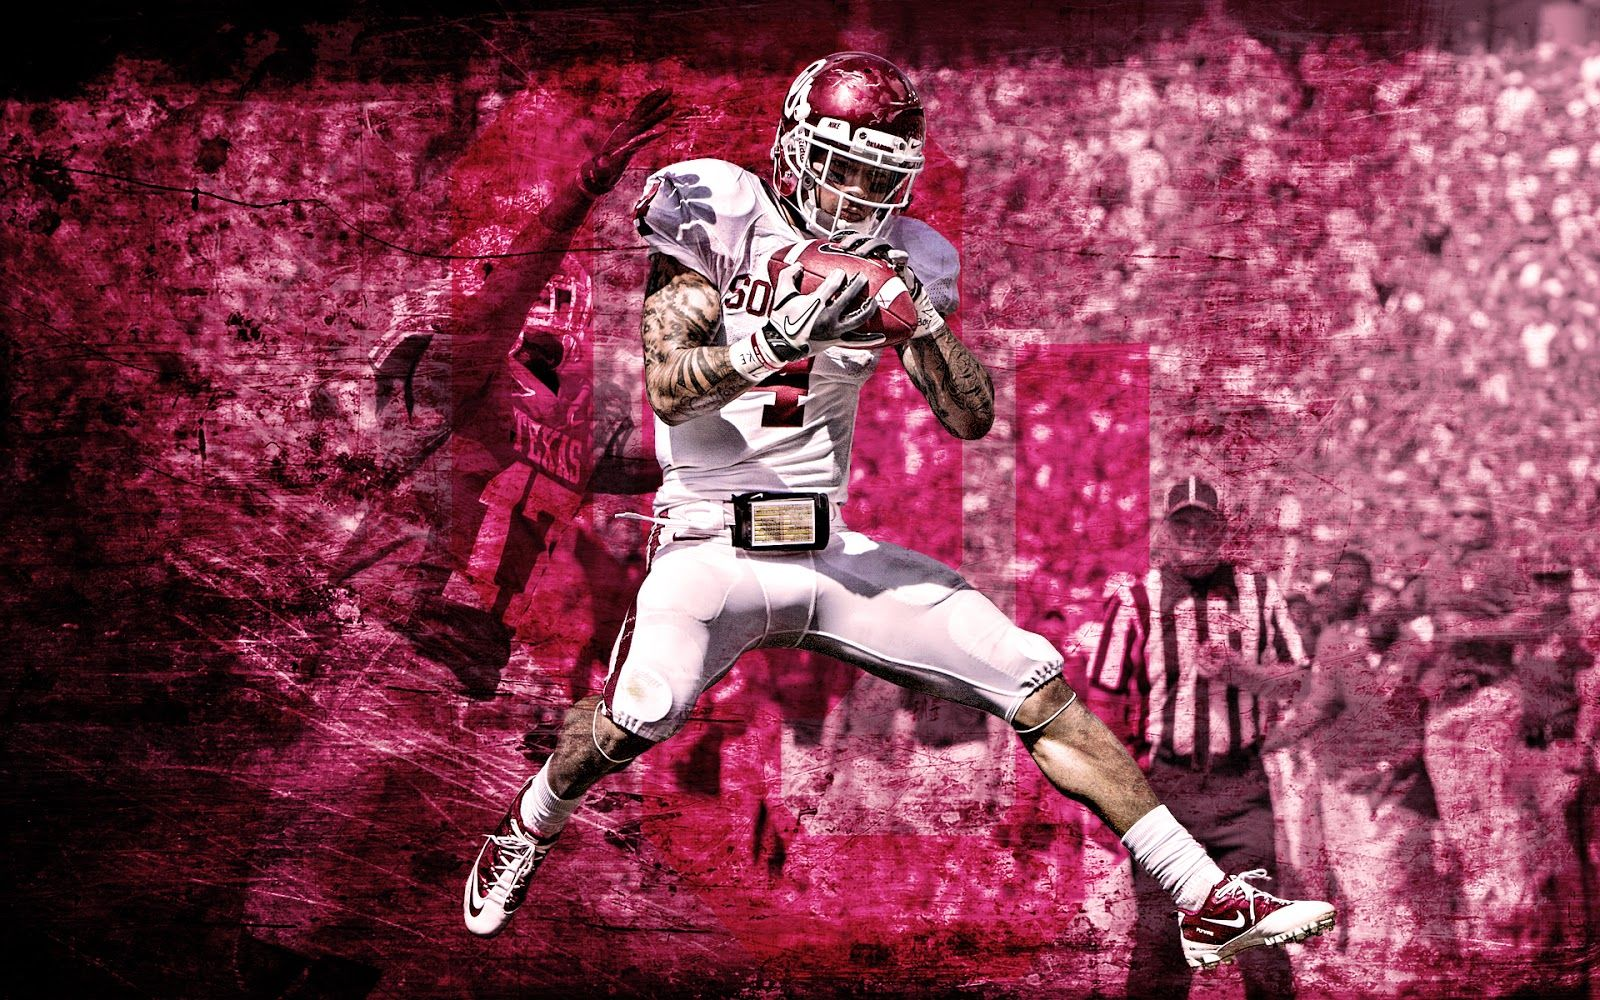 Ou Wallpaper Oklahoma Sooners Wallpapersafari Sooners Oklahoma Sooners Ou Sooners Football